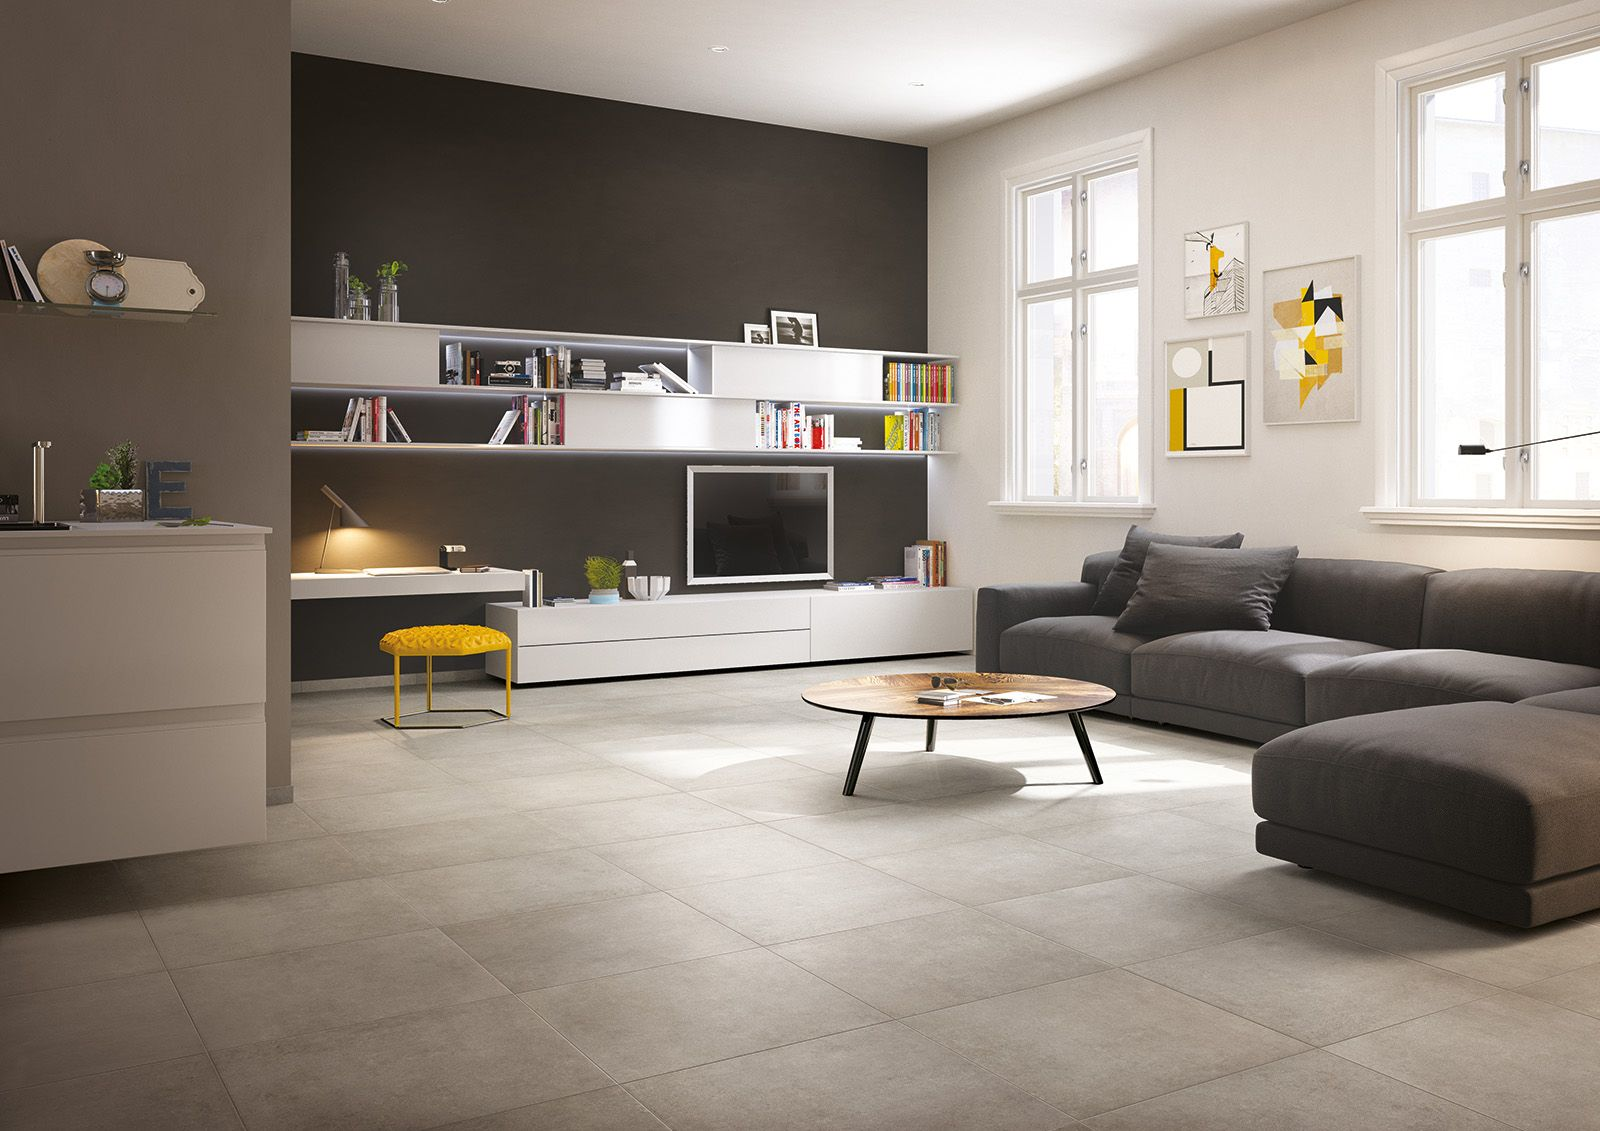 Idee Per Pavimenti Interni : Midtown piastrelle in ceramica per interni living room